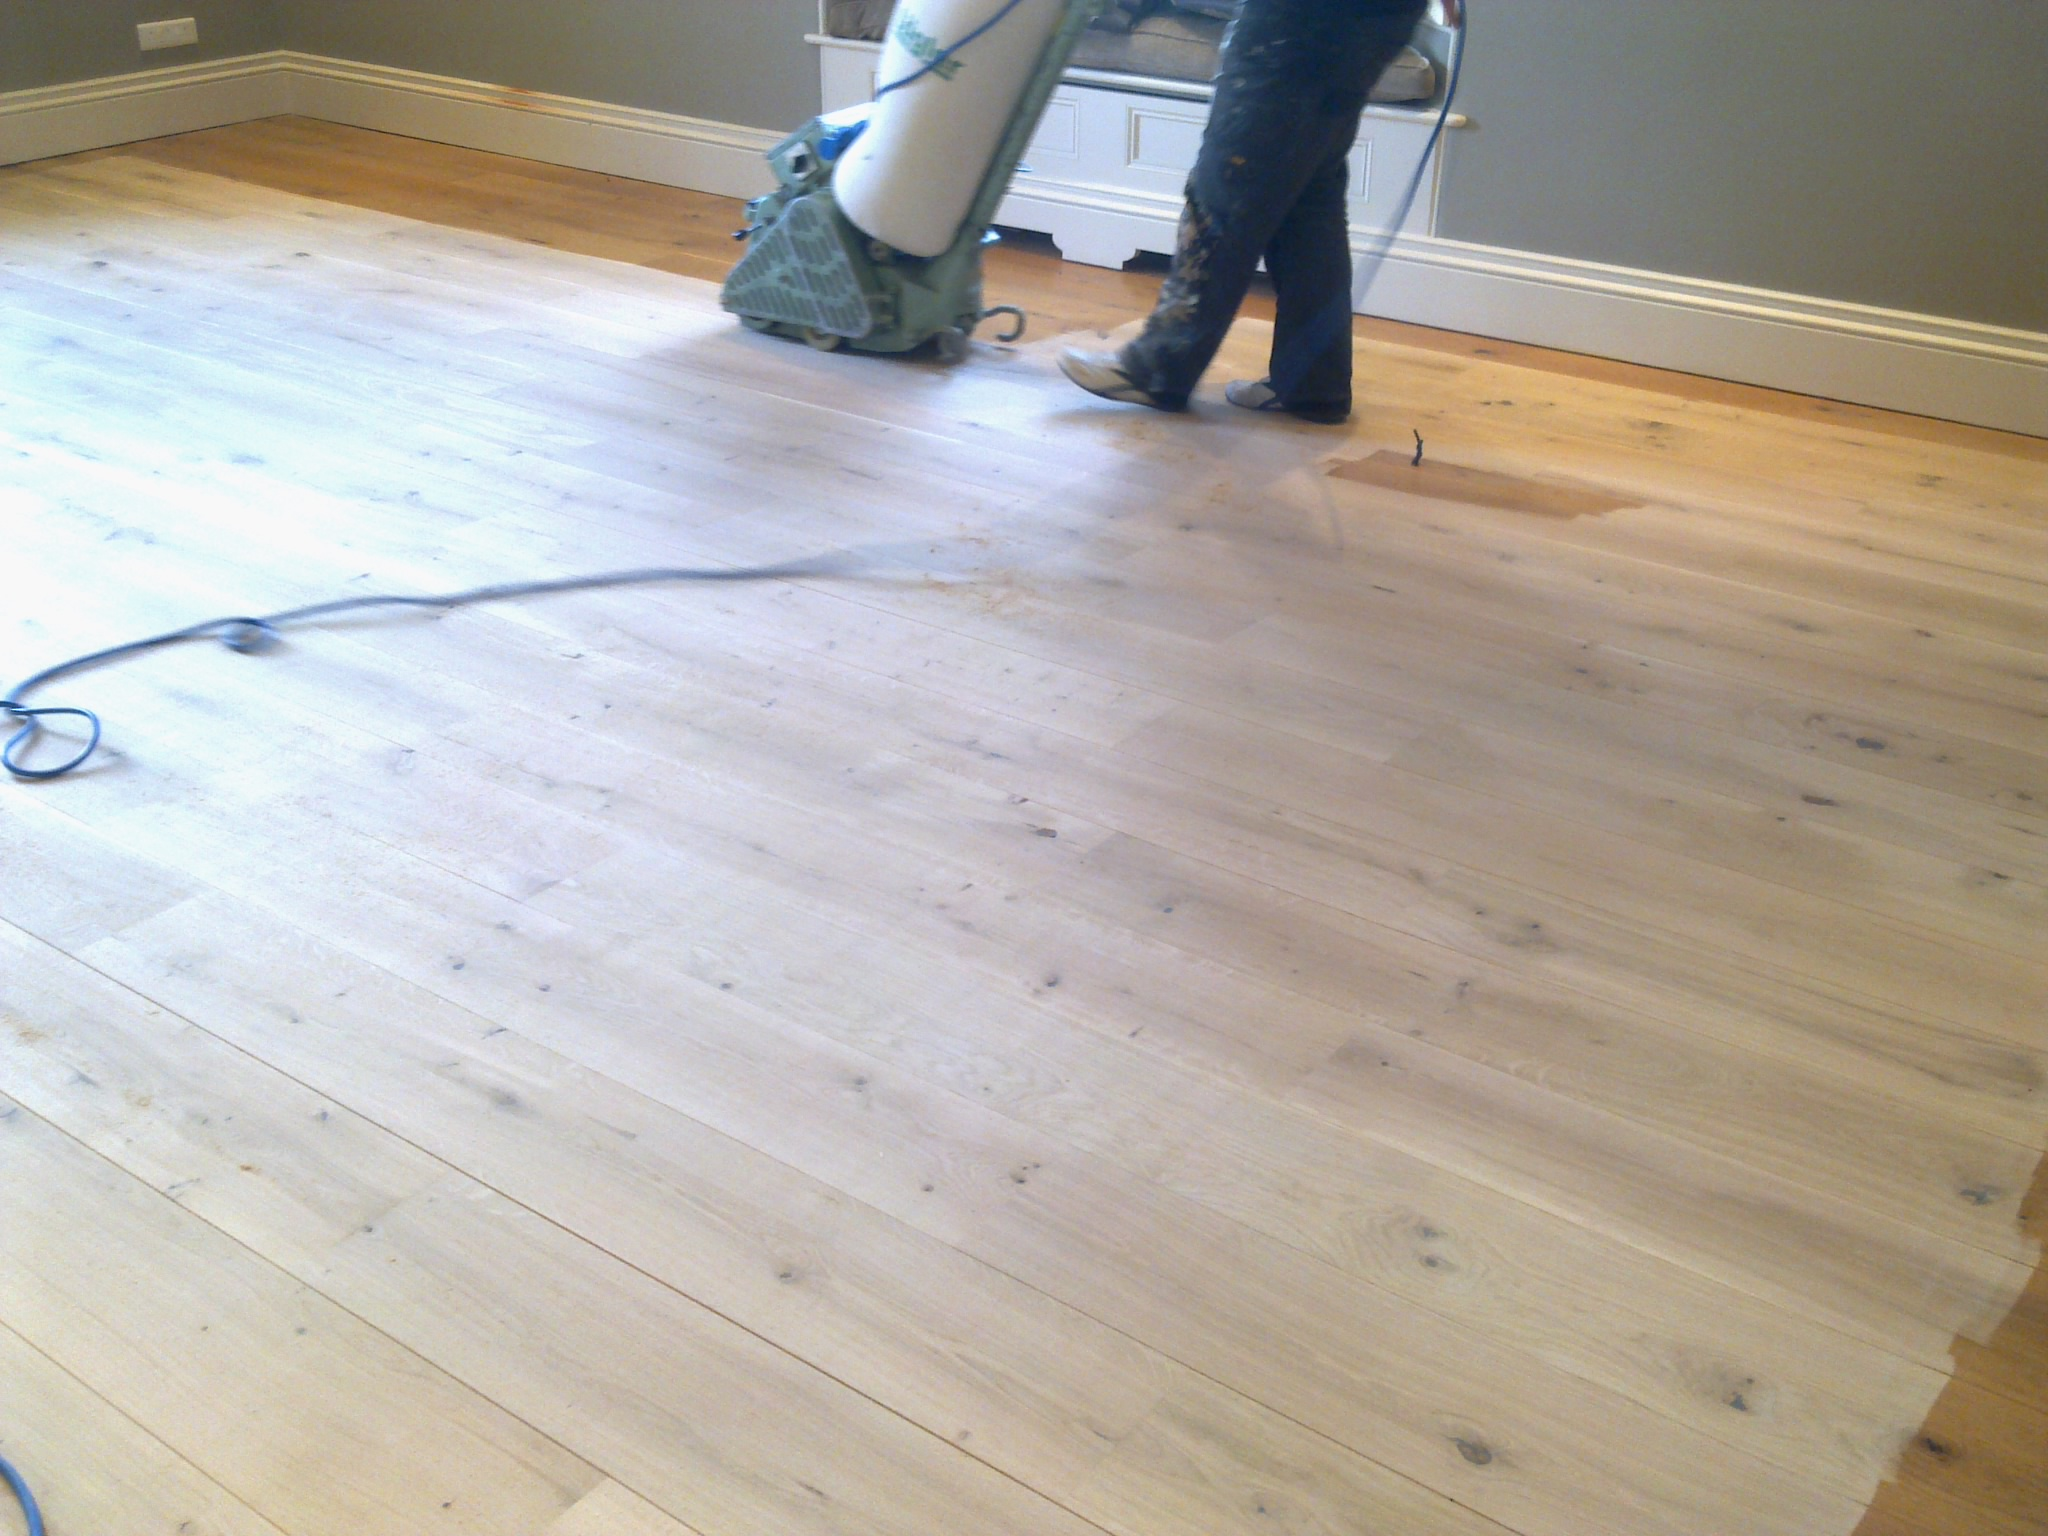 Floor sanding in progress